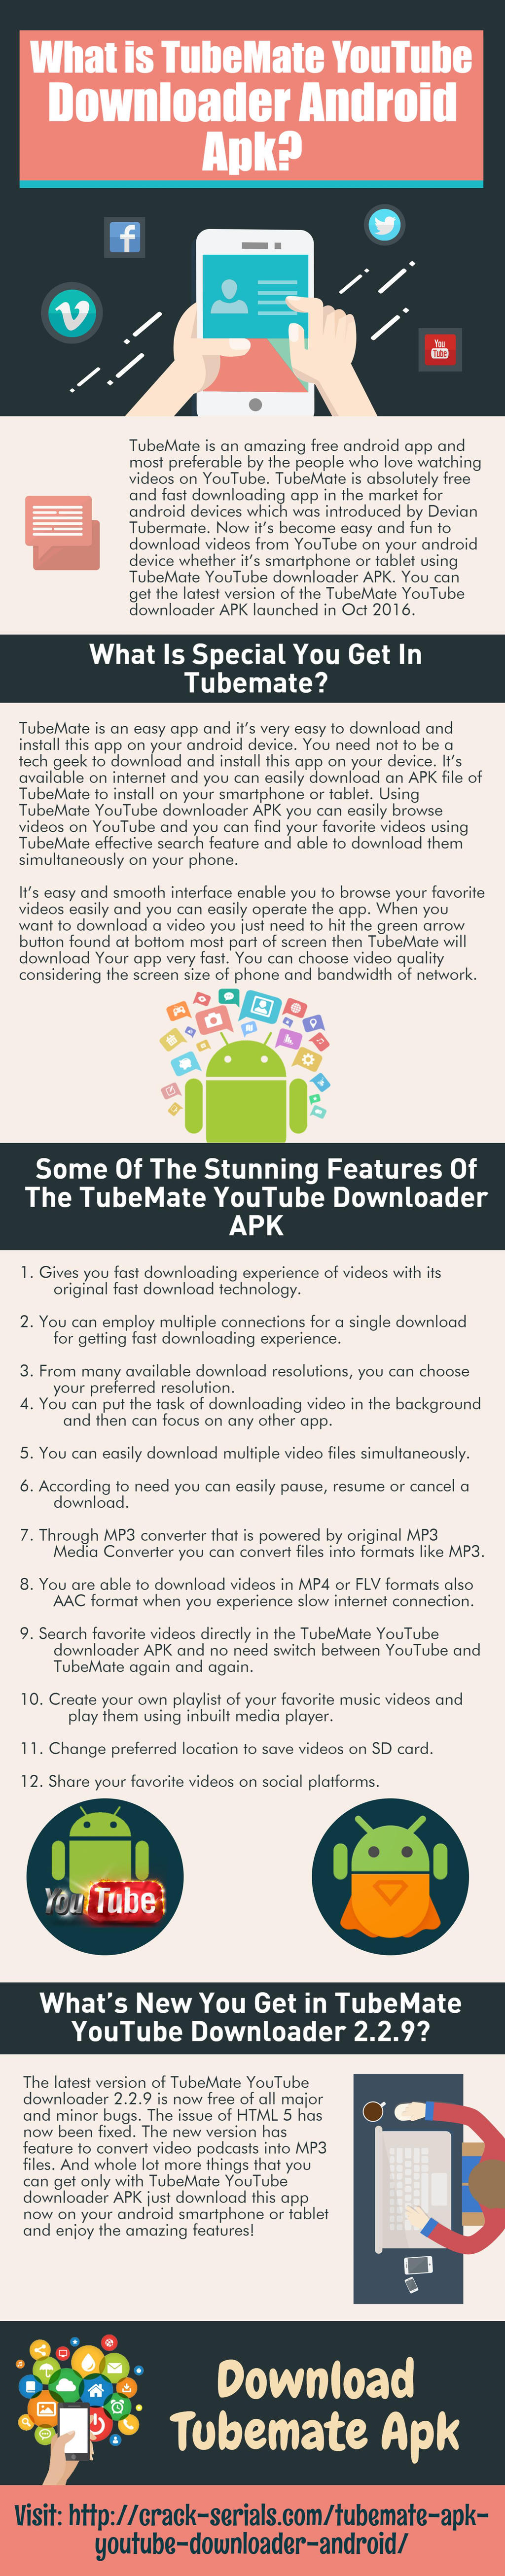 What Is Tubemate Youtube Downloader Android Apk By Hoggkevin On Deviantart